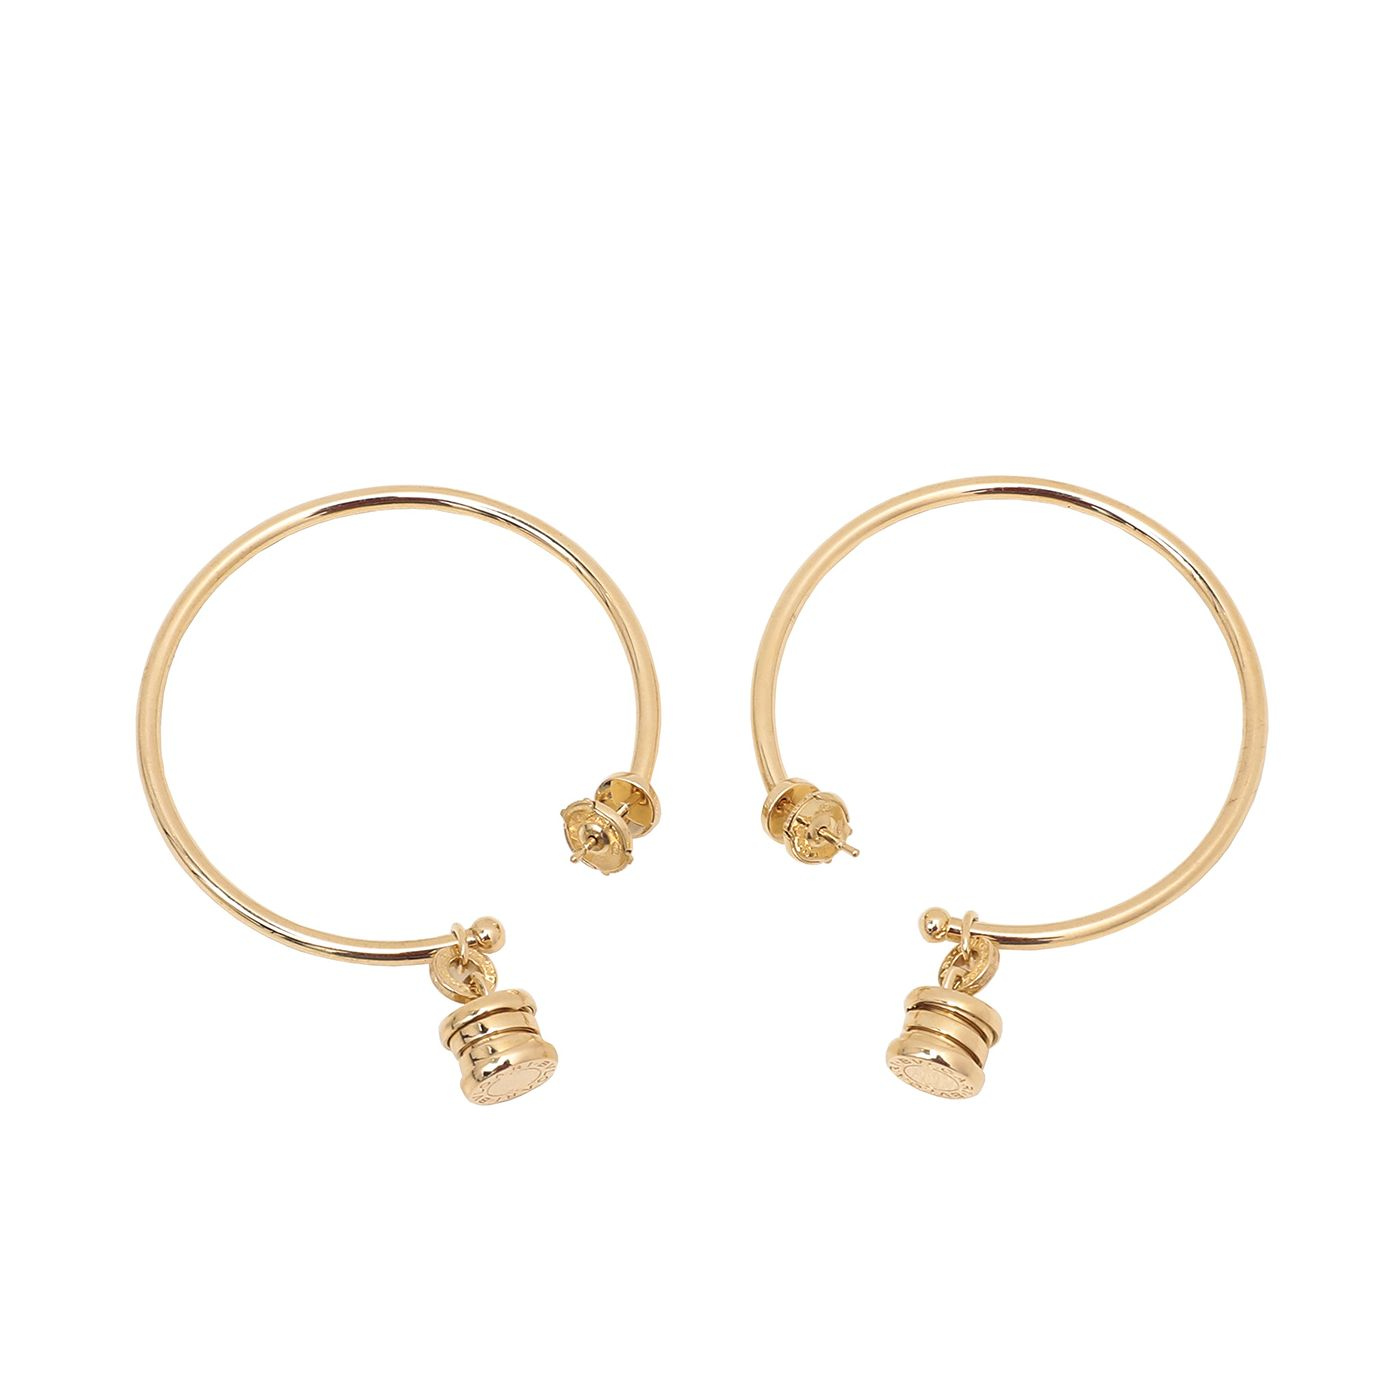 Bvlgari 18K Yellow Gold B Zero Hoop Earrings